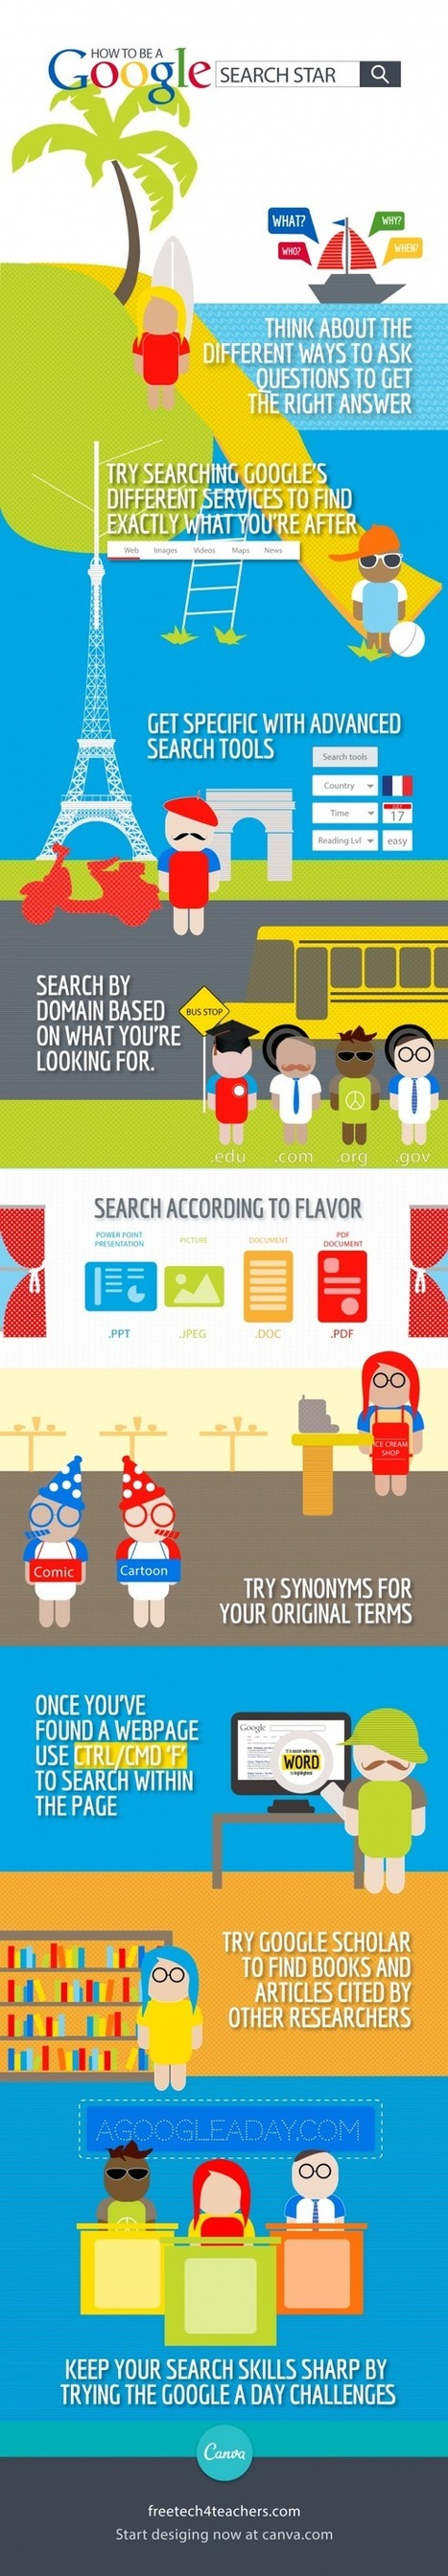 Infographic:  Google Search Strategies for All Students | Primary School eLearning | Scoop.it